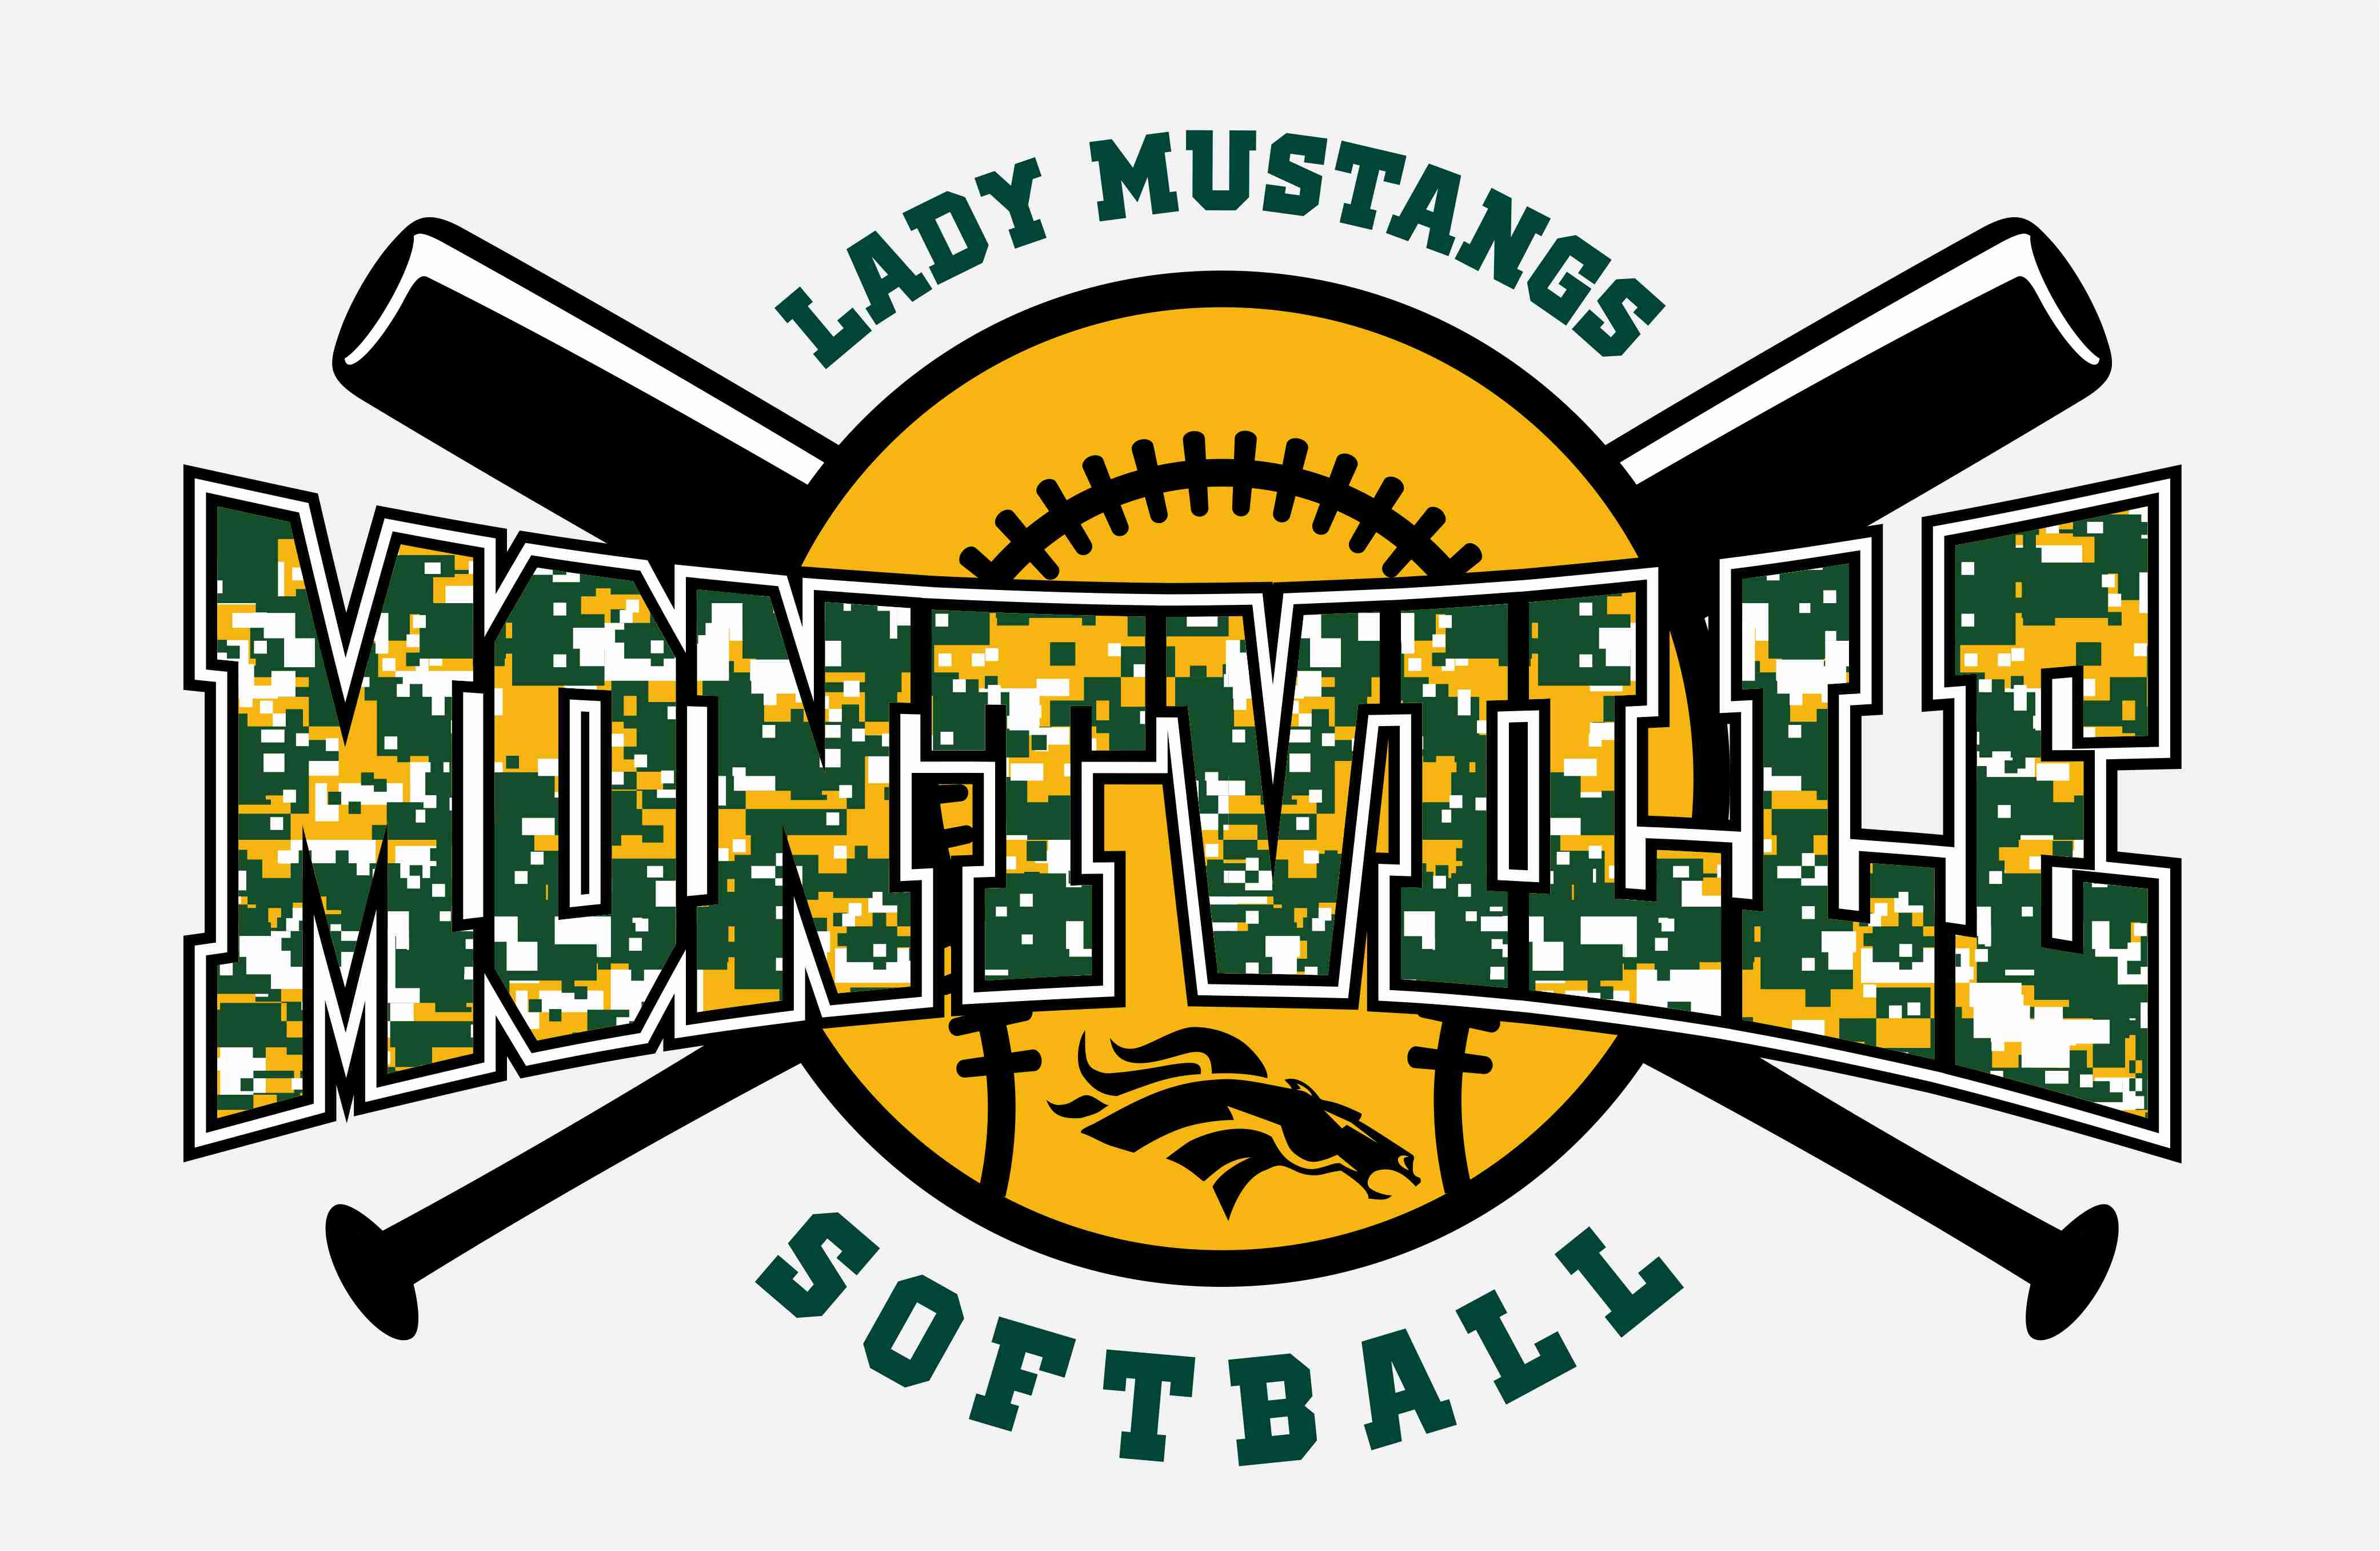 Montville Lady Mustangs Travel Softball